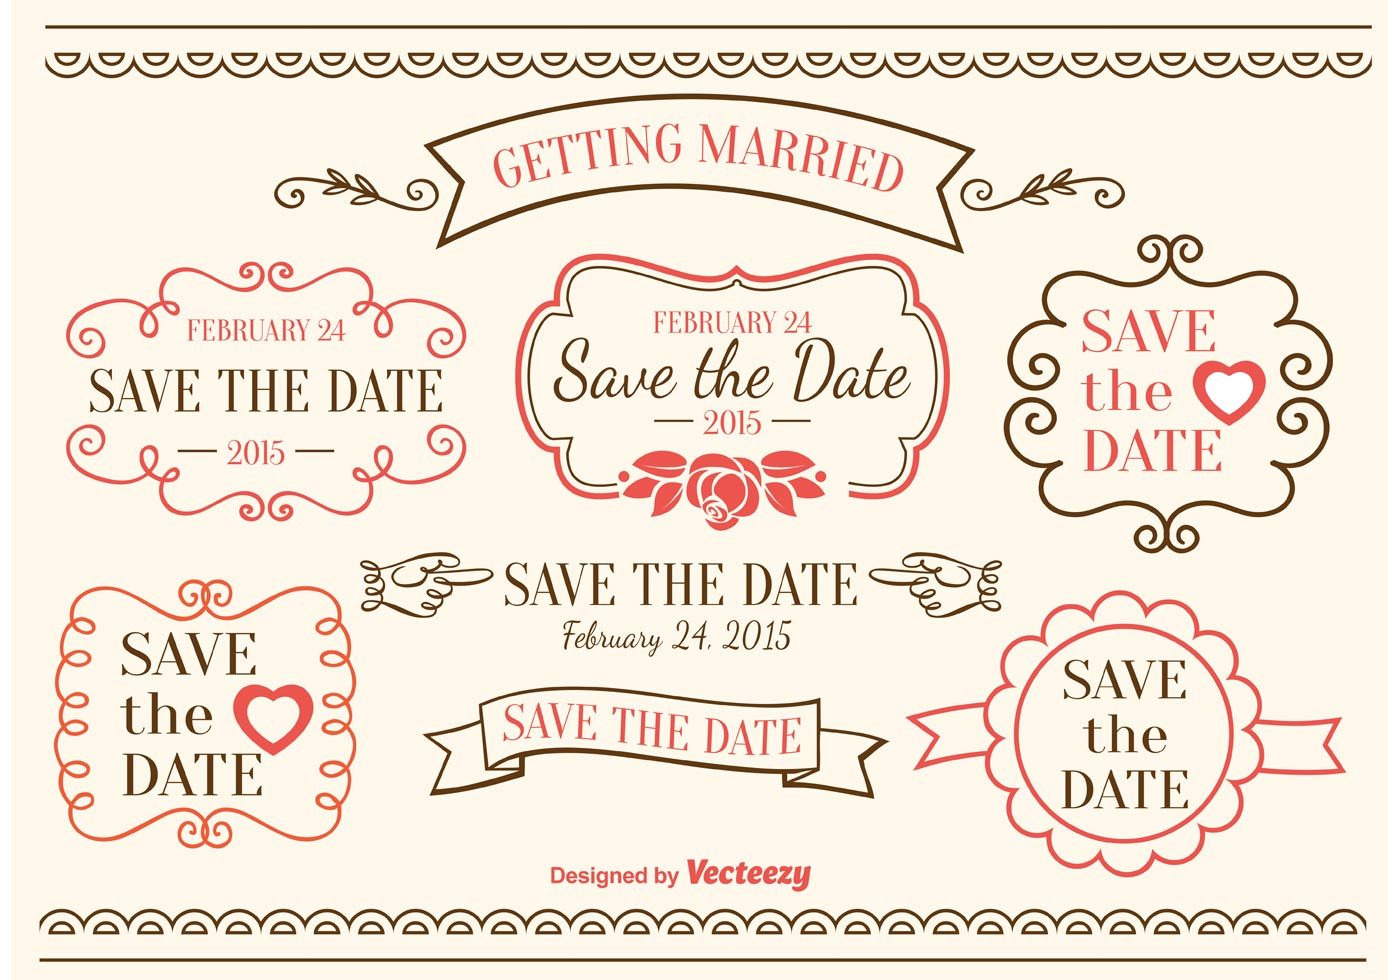 Save the date elements download free vector art stock graphics images for Save the date vector